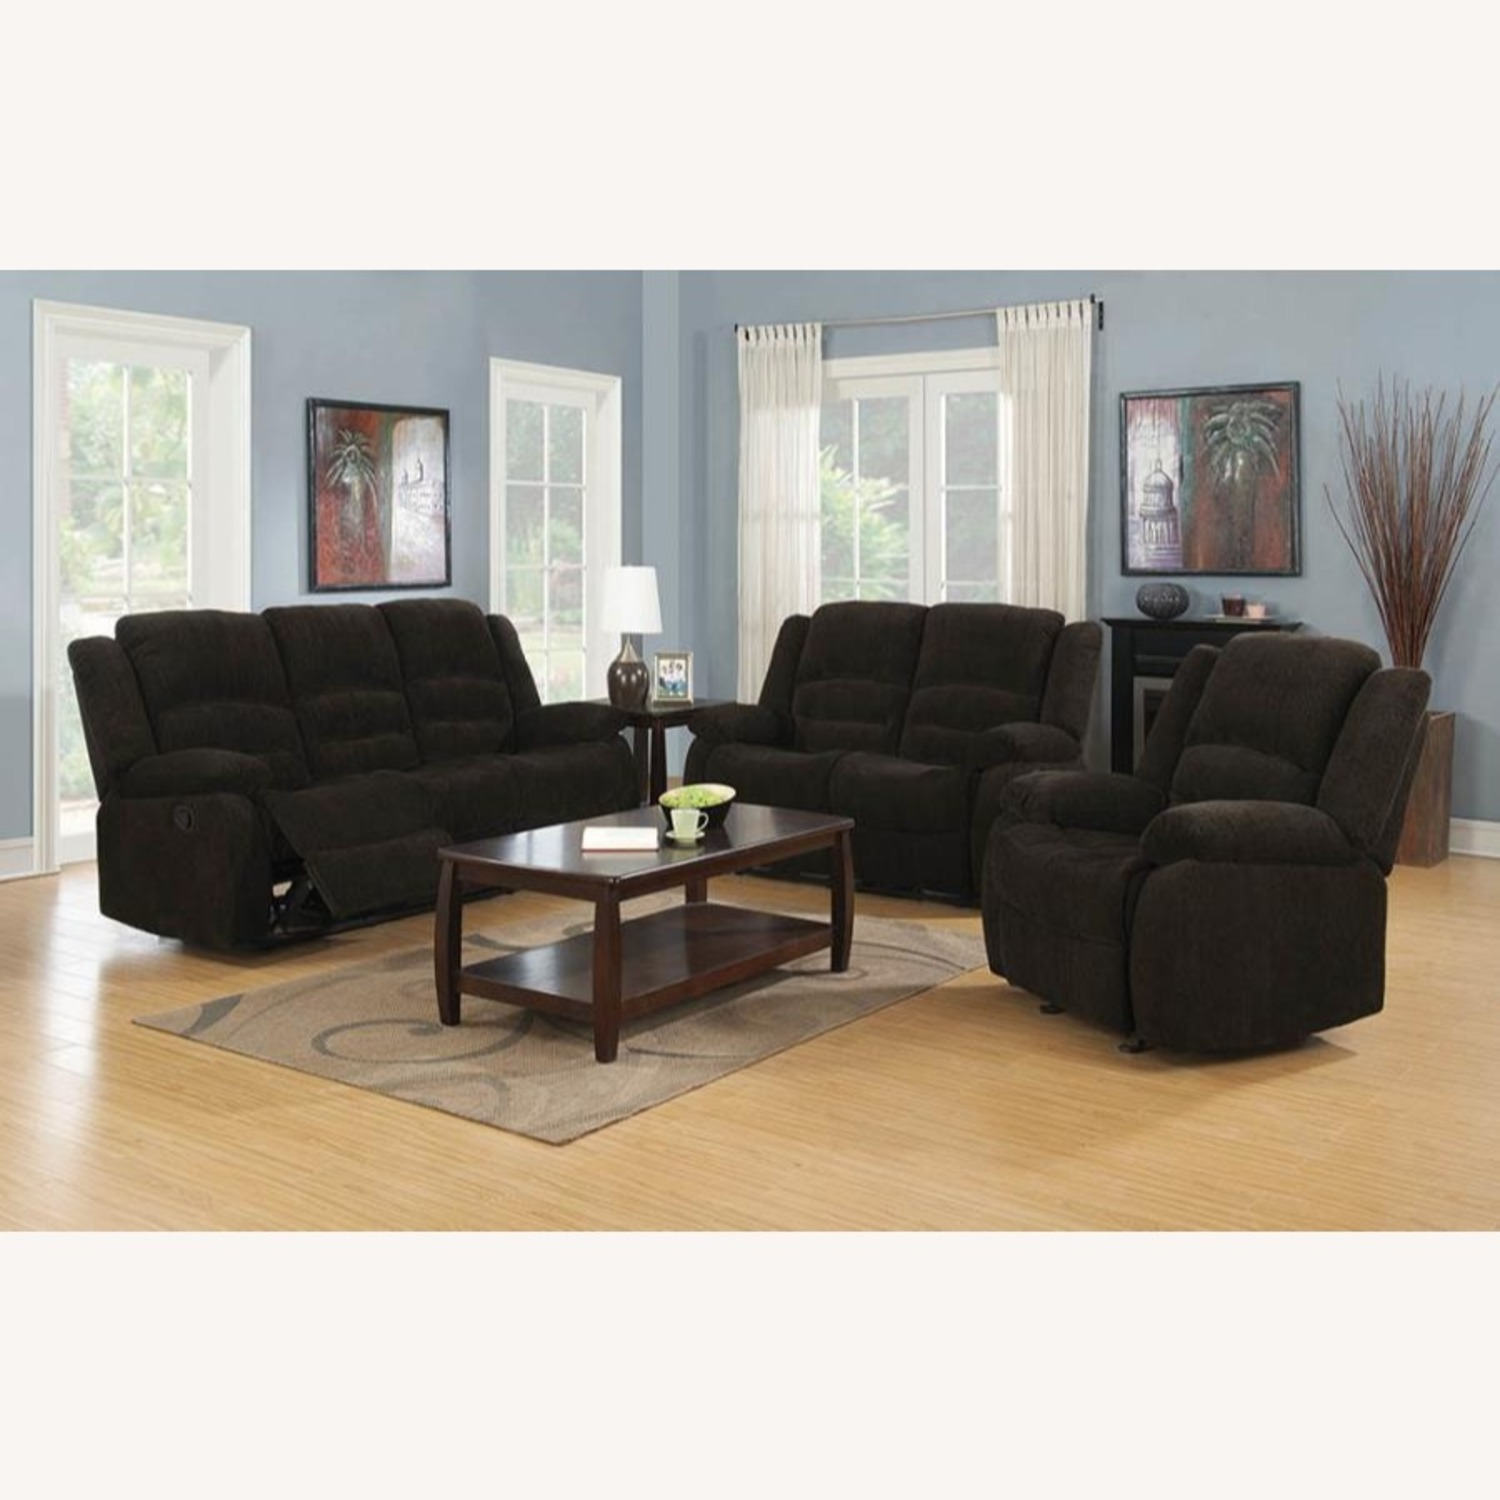 Motion Sofa In Chocolate Chenille W/ Wall Hugger - image-2